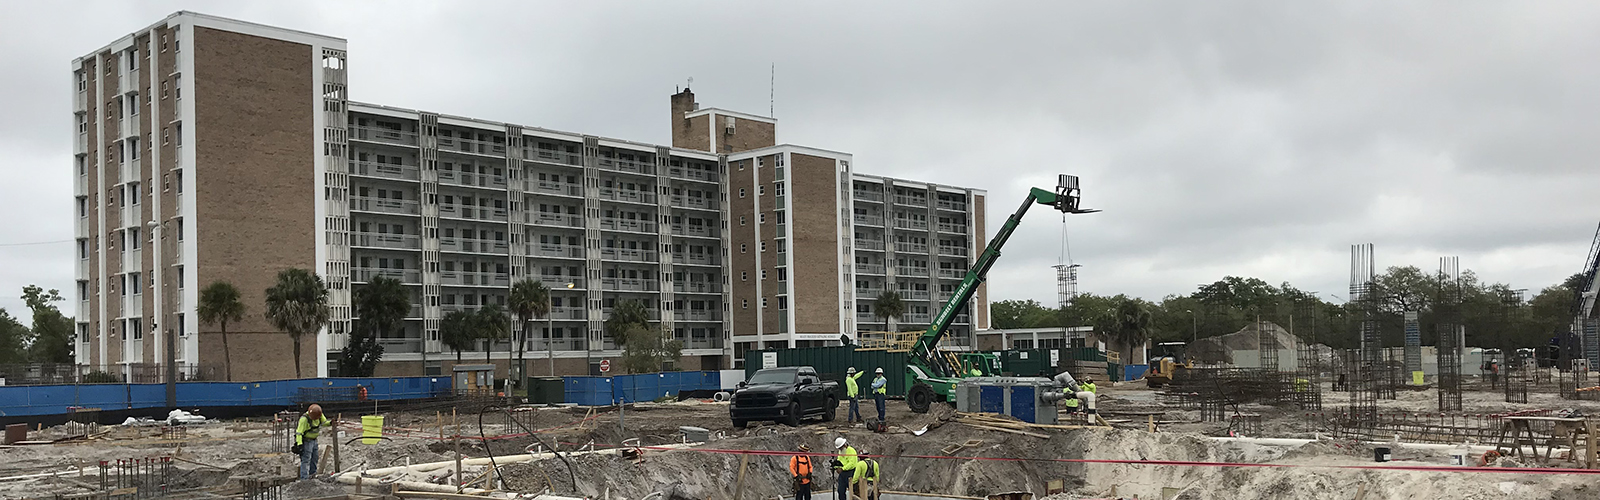 Work crews complete demolition of the North Boulevard Homes public housing and start construction on the West River redevelopment project.